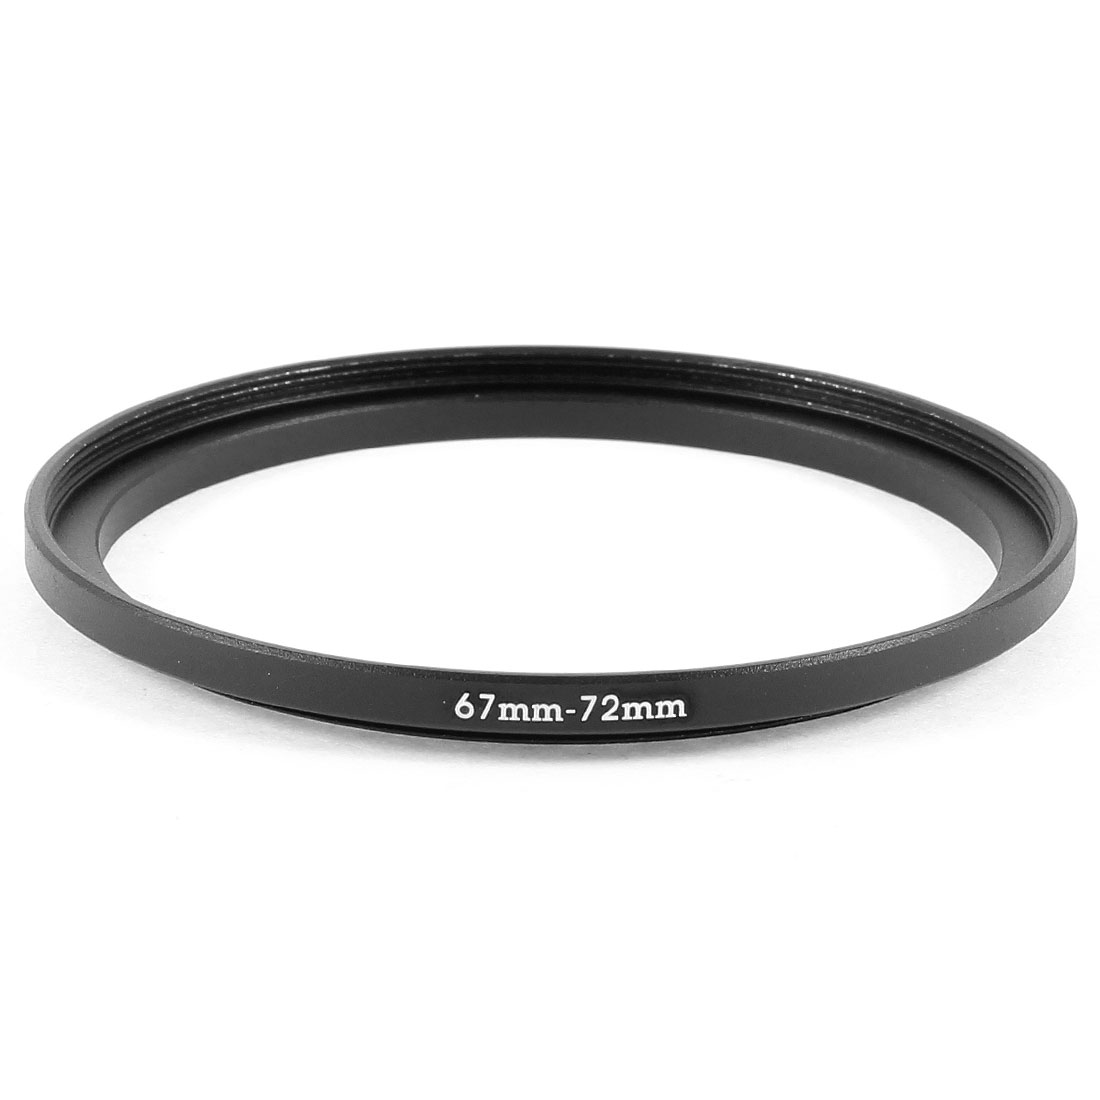 Aluminum Step Up Lens Filter Ring Stepping Adapter 67mm-72mm